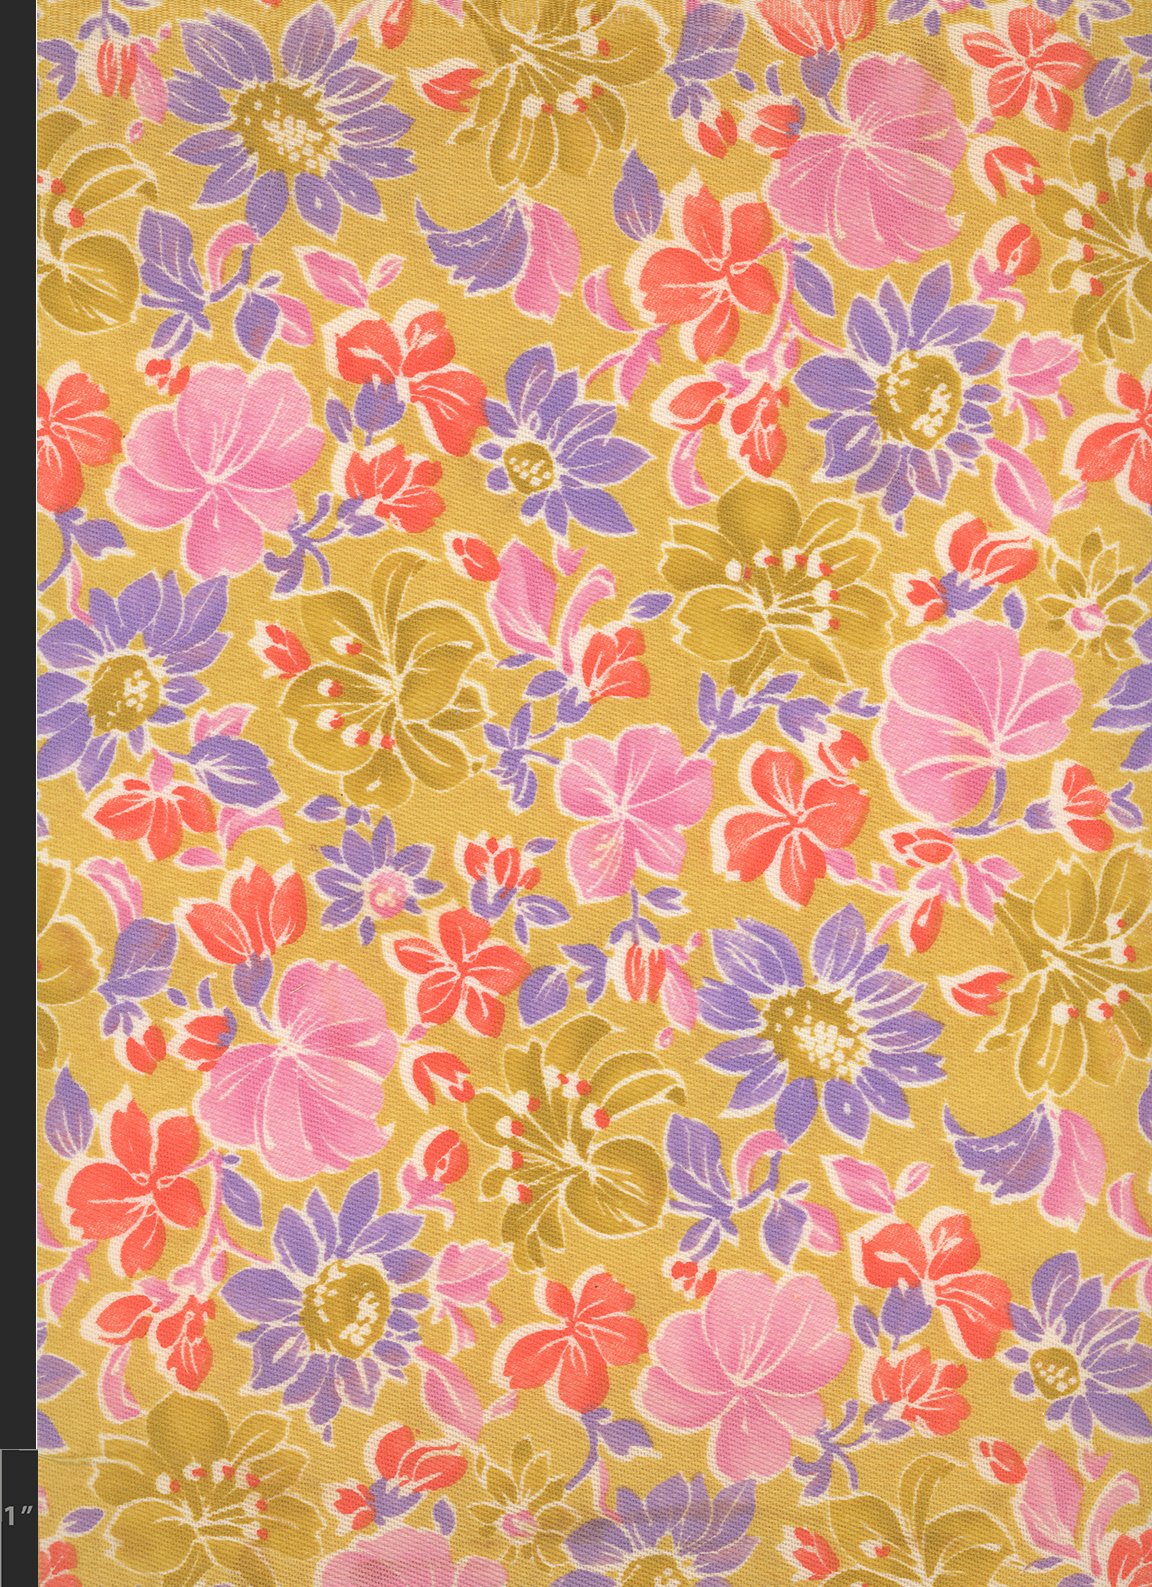 Marielle Bancou Segal floral printed textile design for The Villager 1960s full 1 Drexel Digital Museum 04F